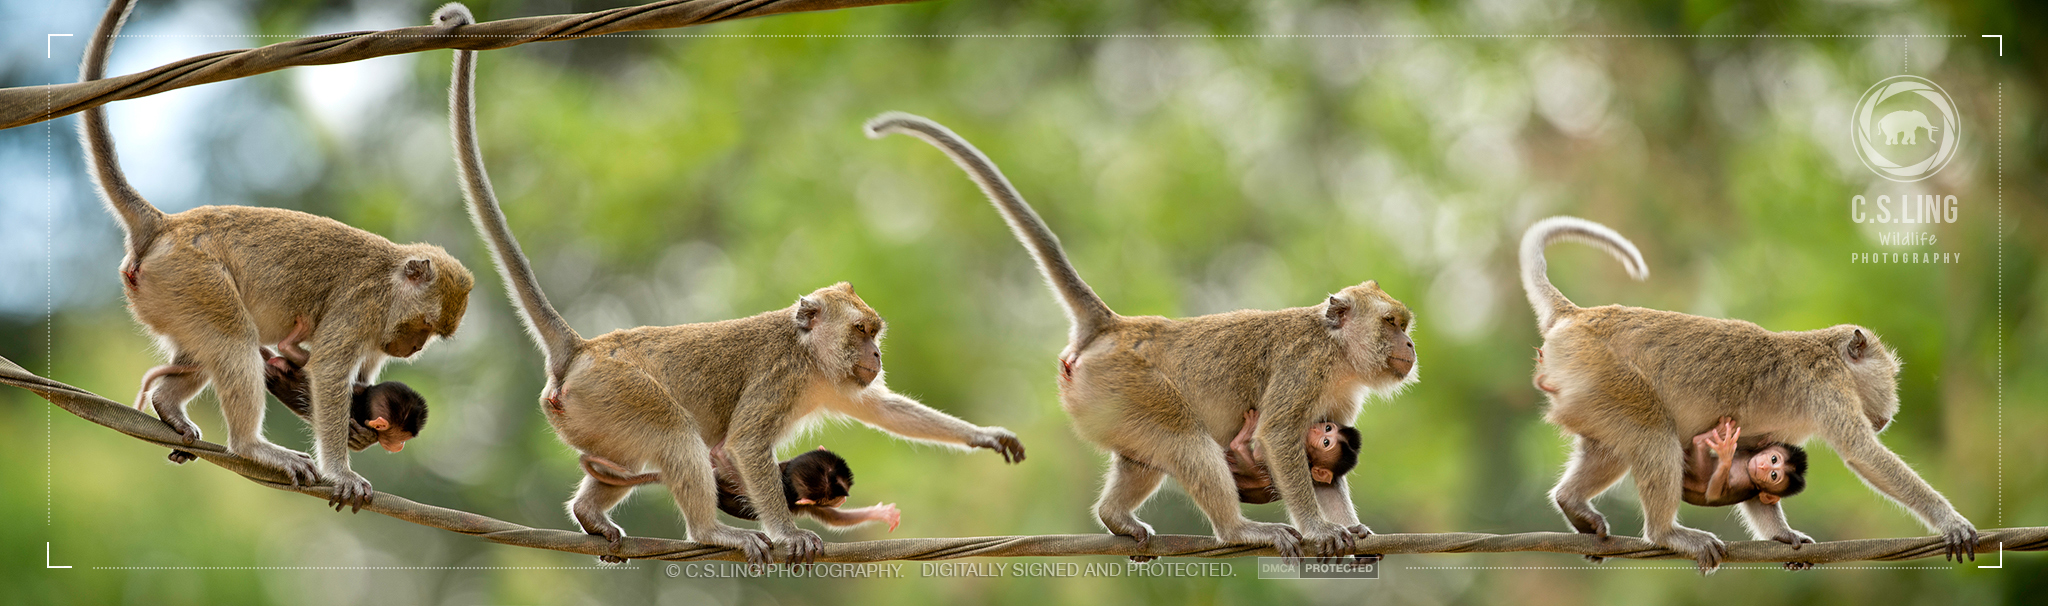 Long-tailed Macaque Mother and Child | Wildlife of Borneo